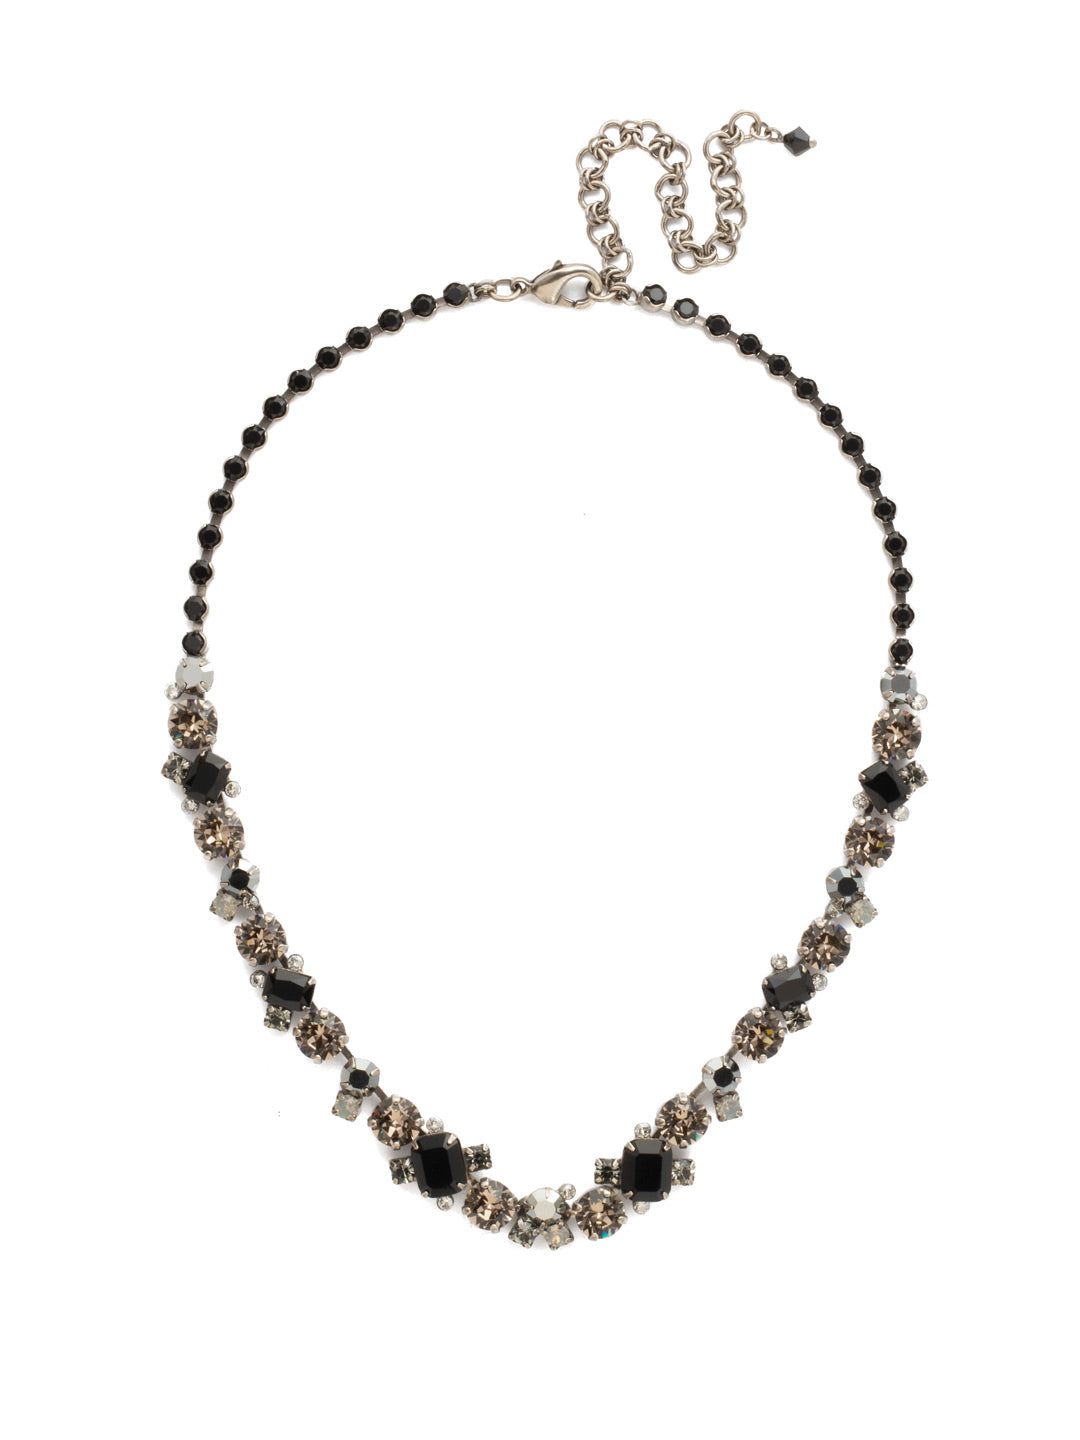 Glittering Multi-Cut Crystal Necklace - NCF6ASBON